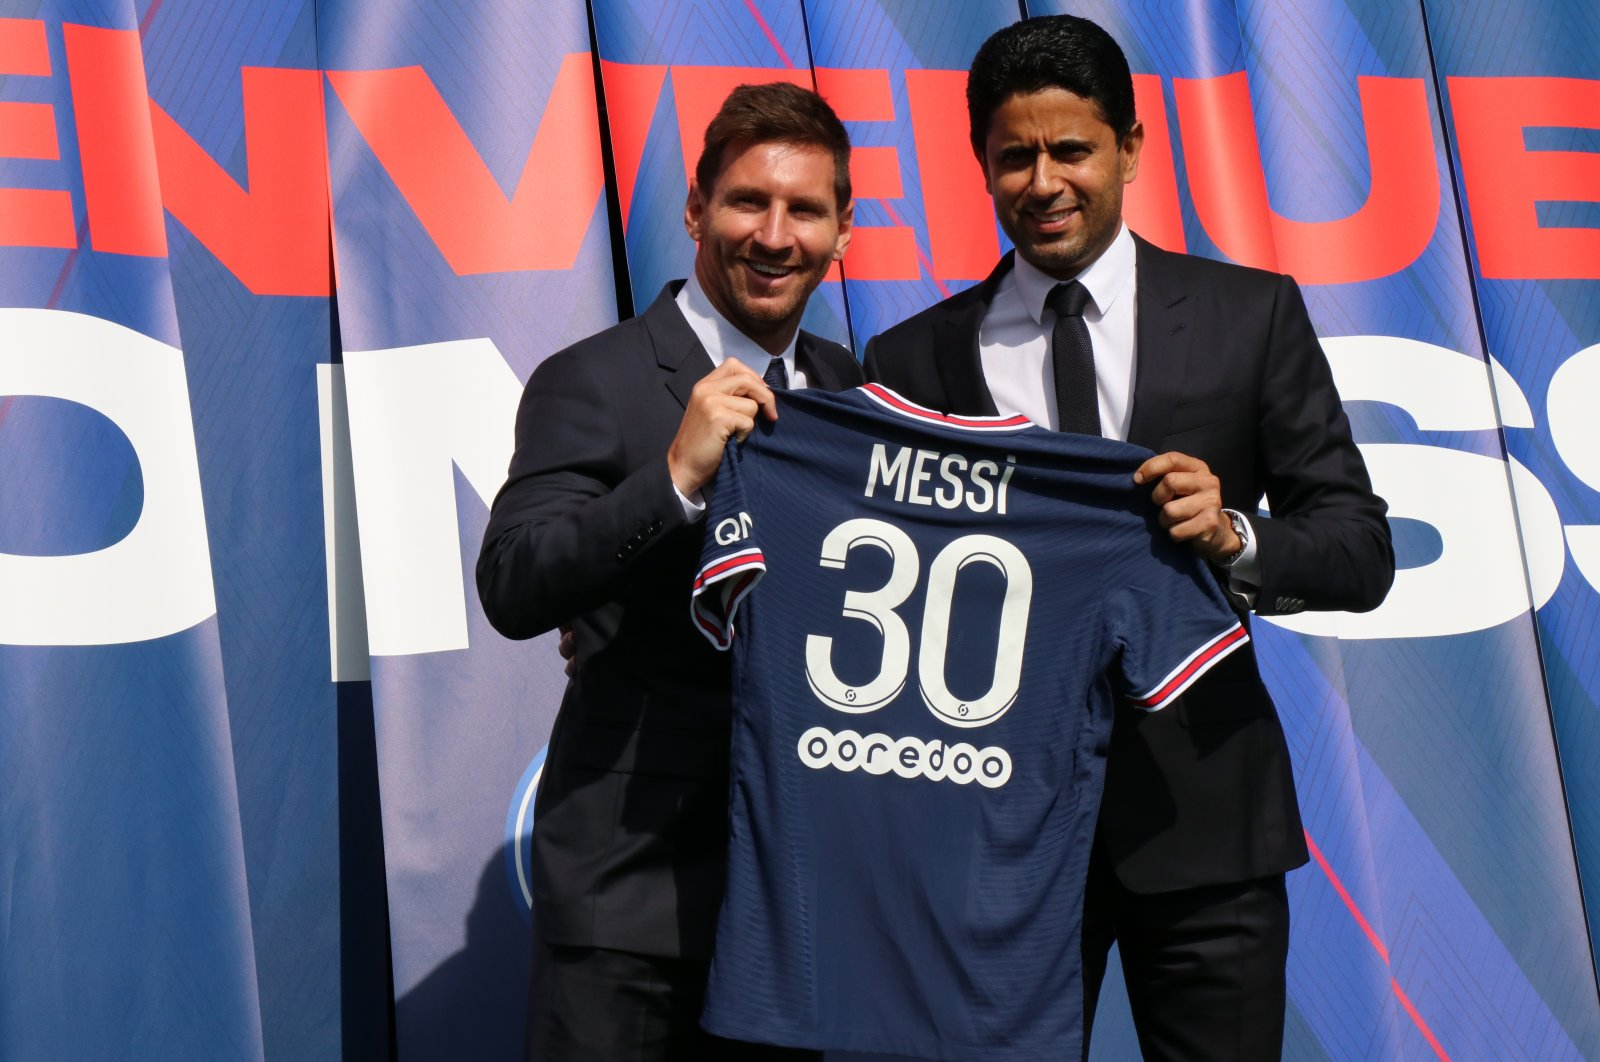 Lionel Messi holds a jersey as he poses next to PSG Chairperson Nasser al-Khelaifi (R), in Paris, France, Aug. 11, 2021. (AA PHOTO)